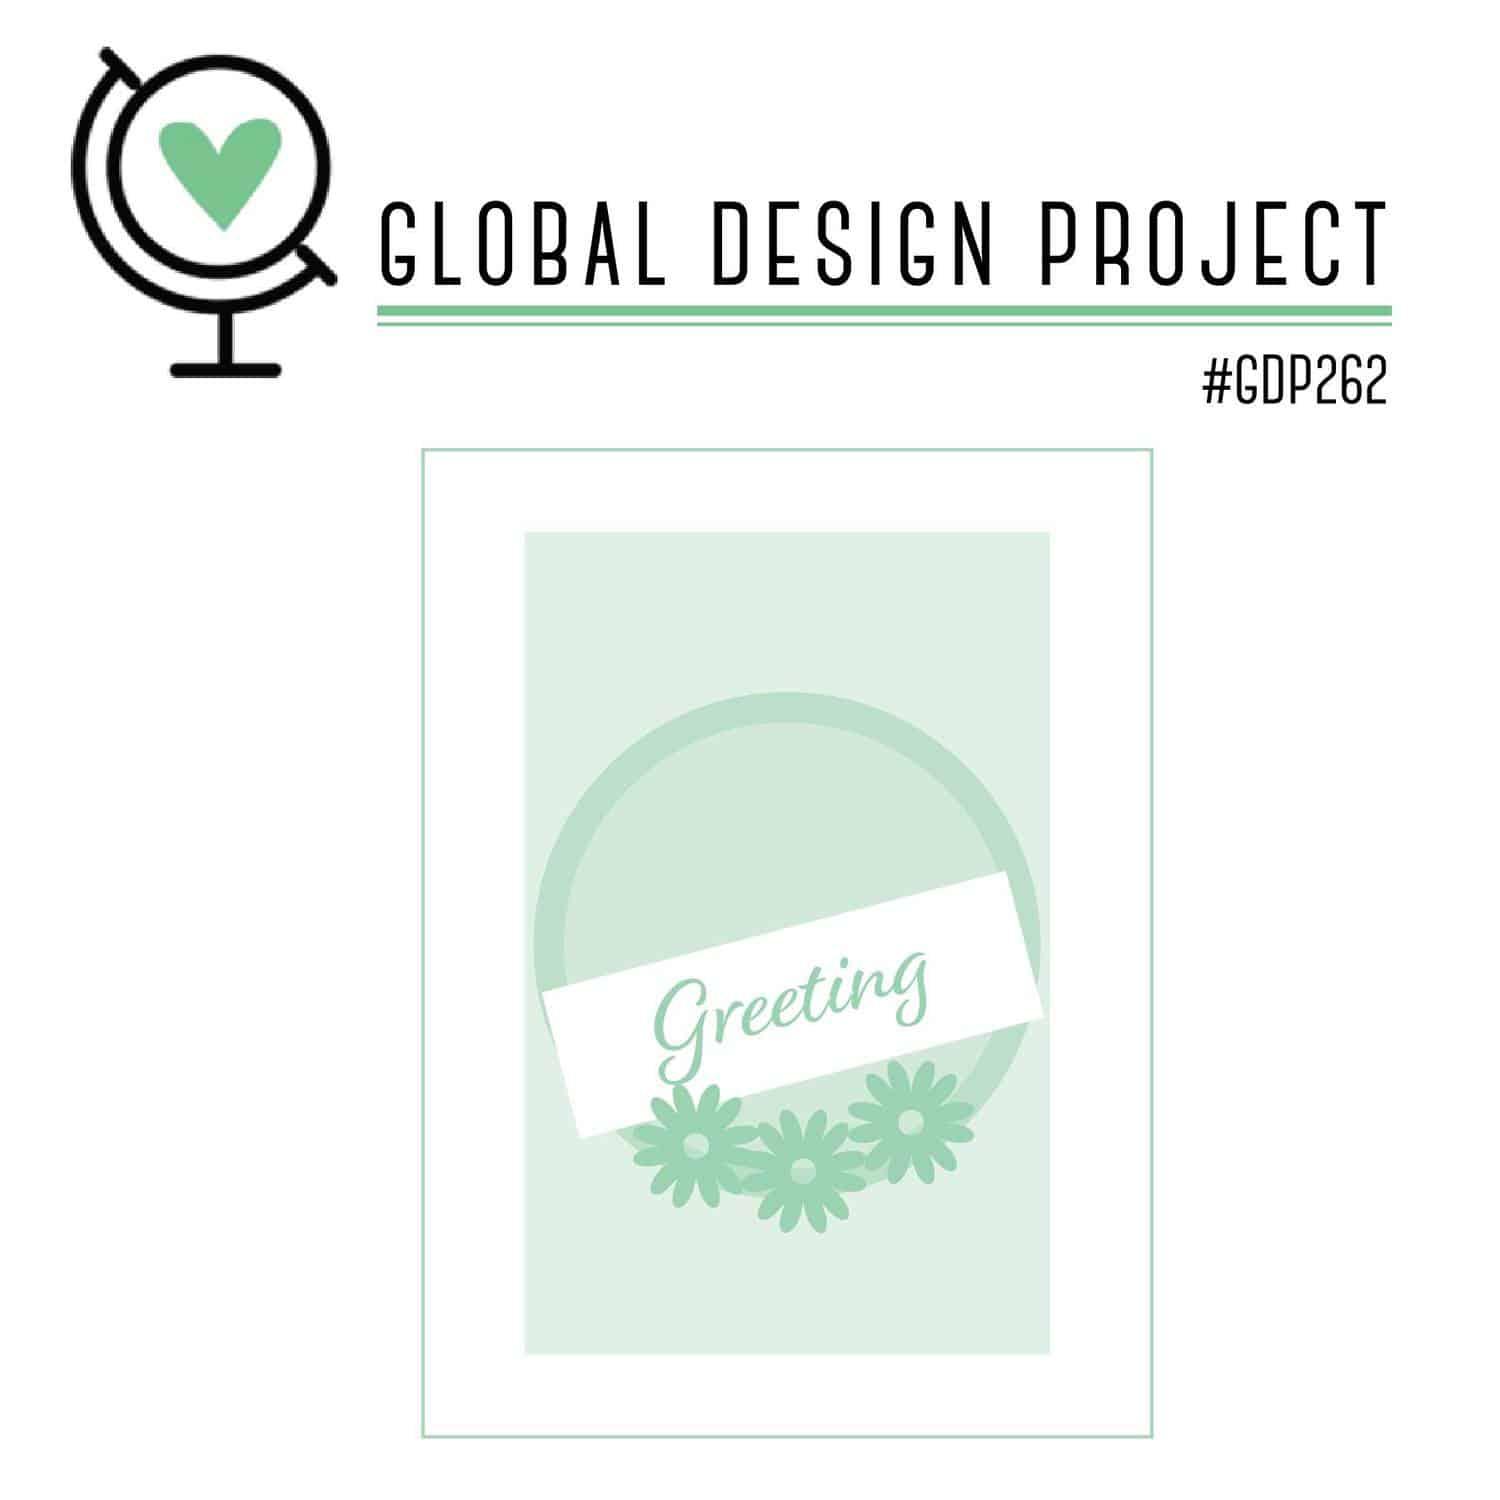 Global Design Project 262